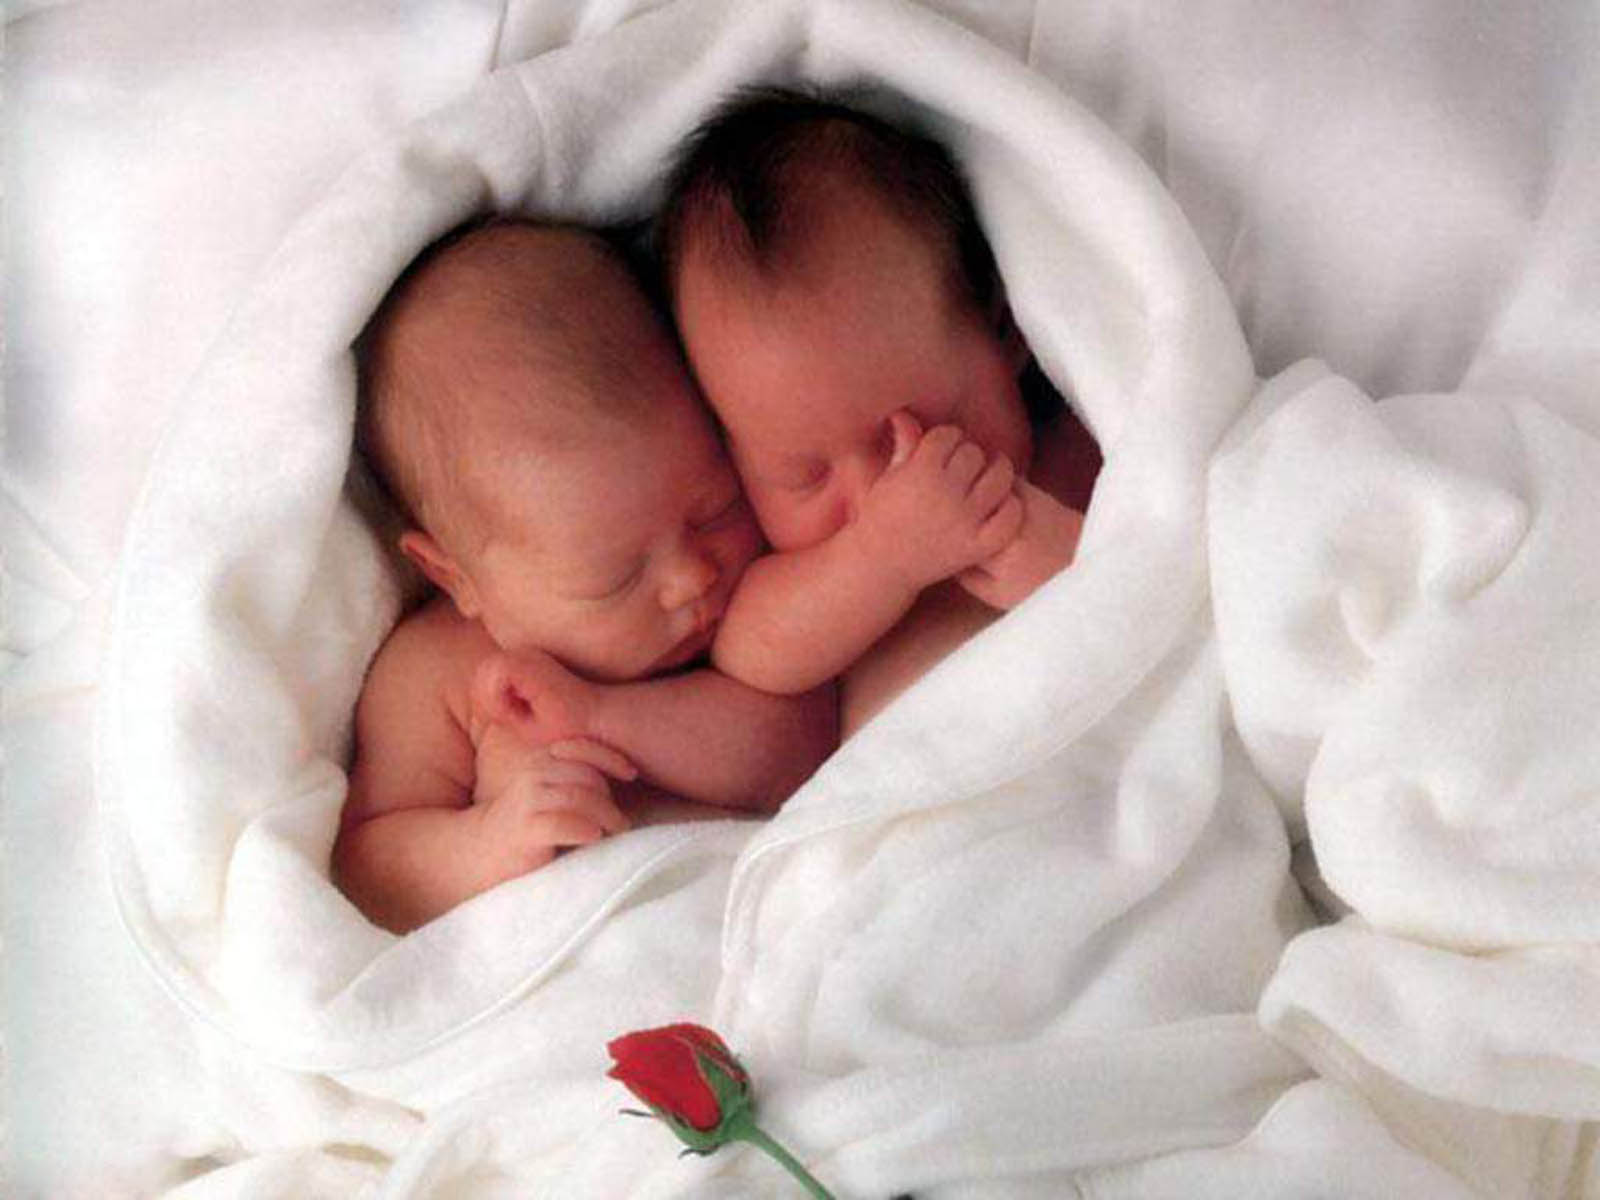 Tag: Sleeping Babies Wallpapers, Images, Photos, Pictures and ...